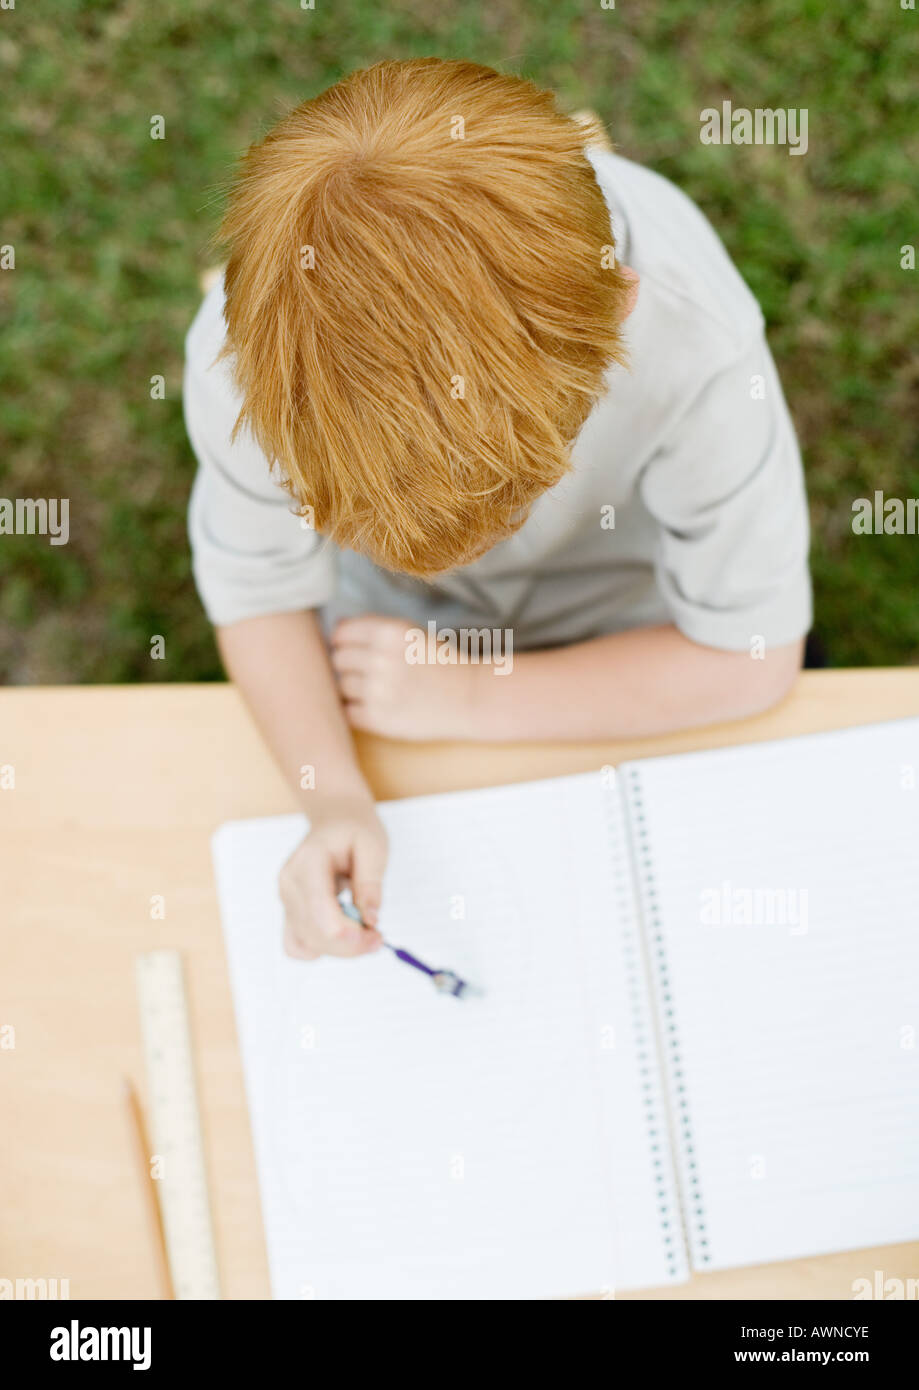 Boy sitting with open notebook Stock Photo